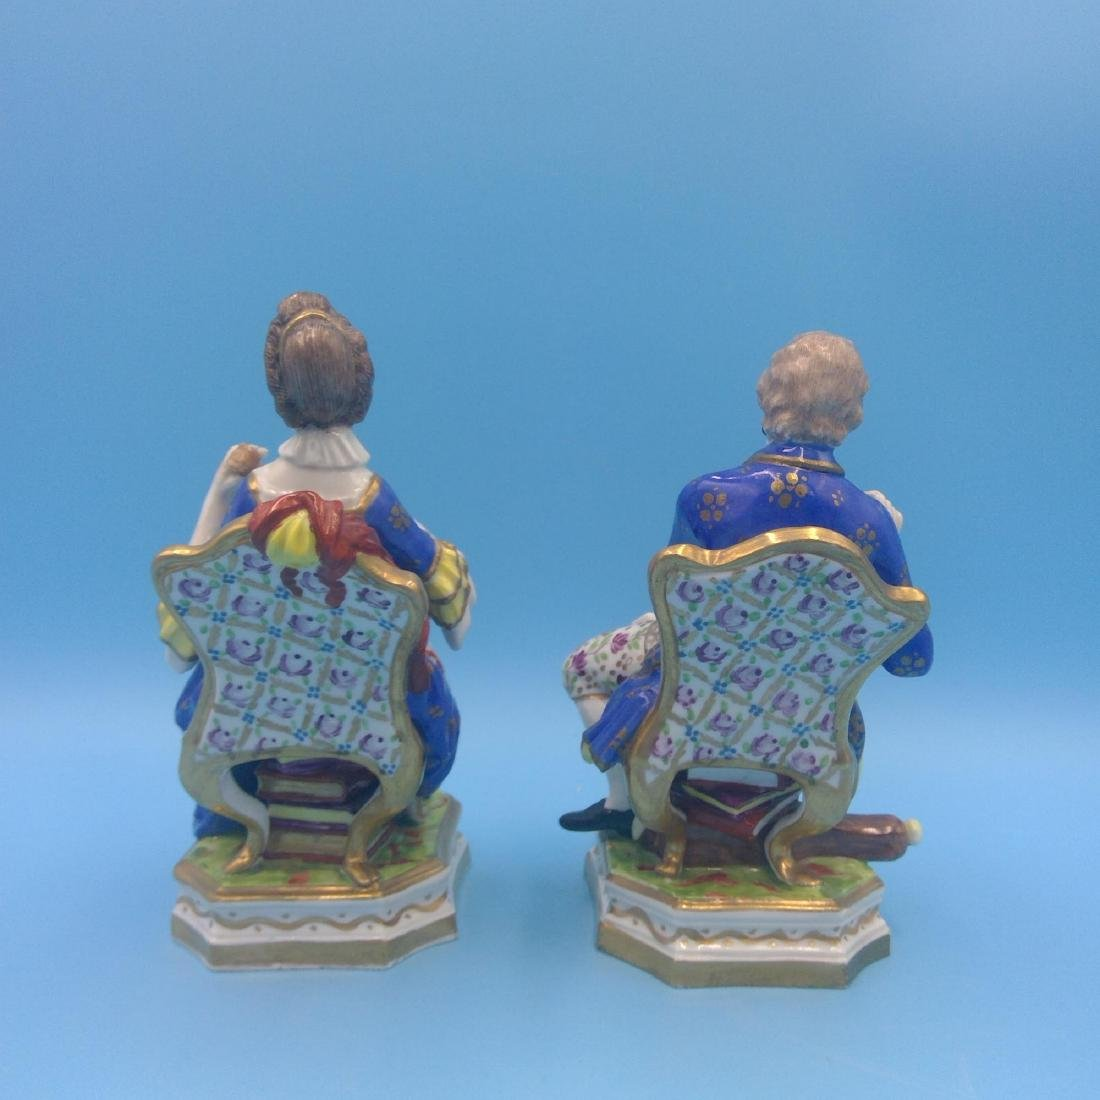 PAIR OF DERBY 18thC ENGLISH PORCELAIN FIGURINES - 3